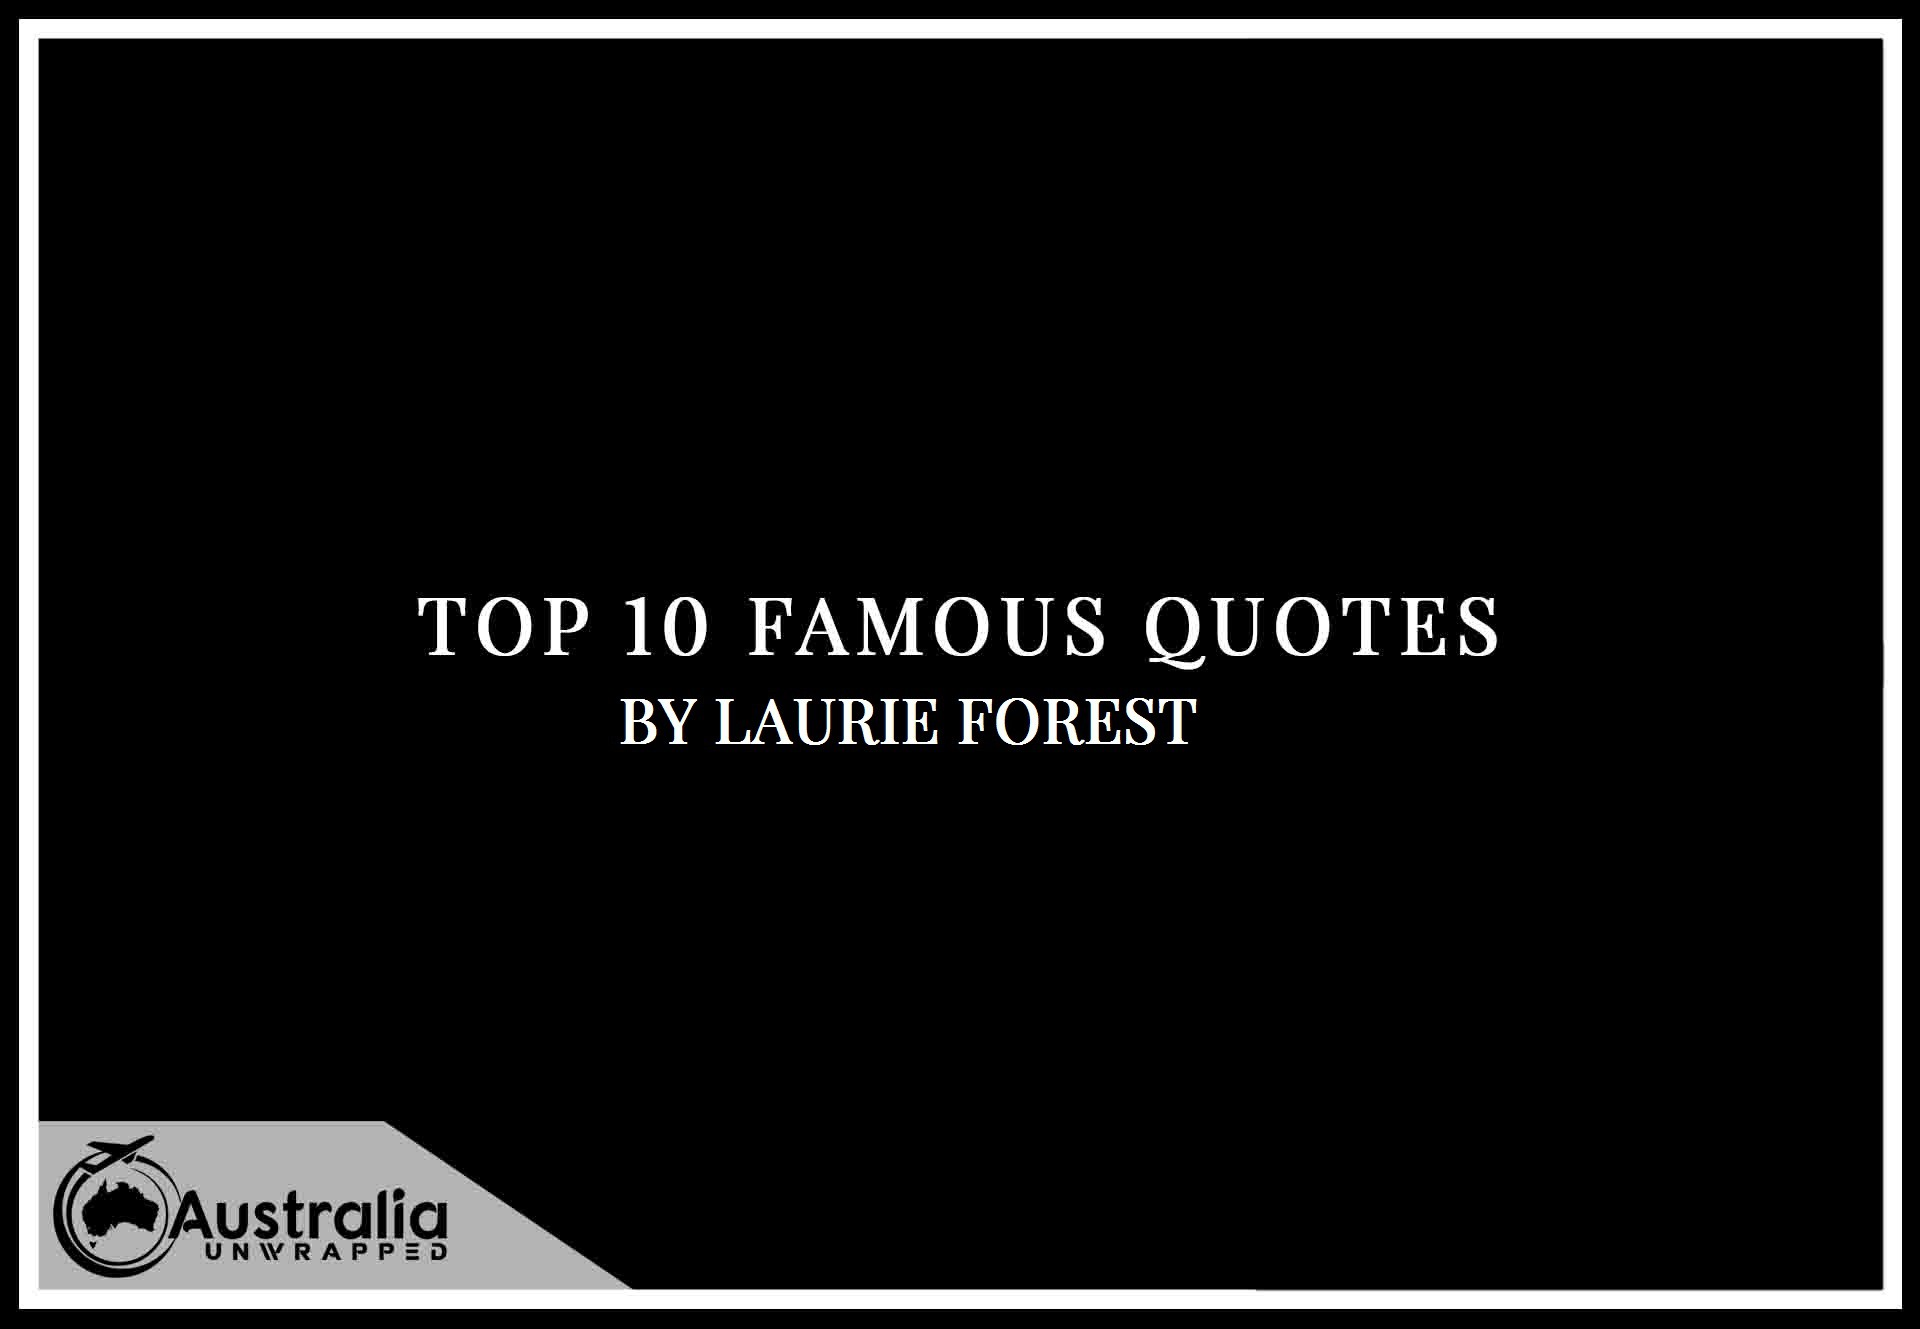 Laurie Forest's Top 10 Popular and Famous Quotes